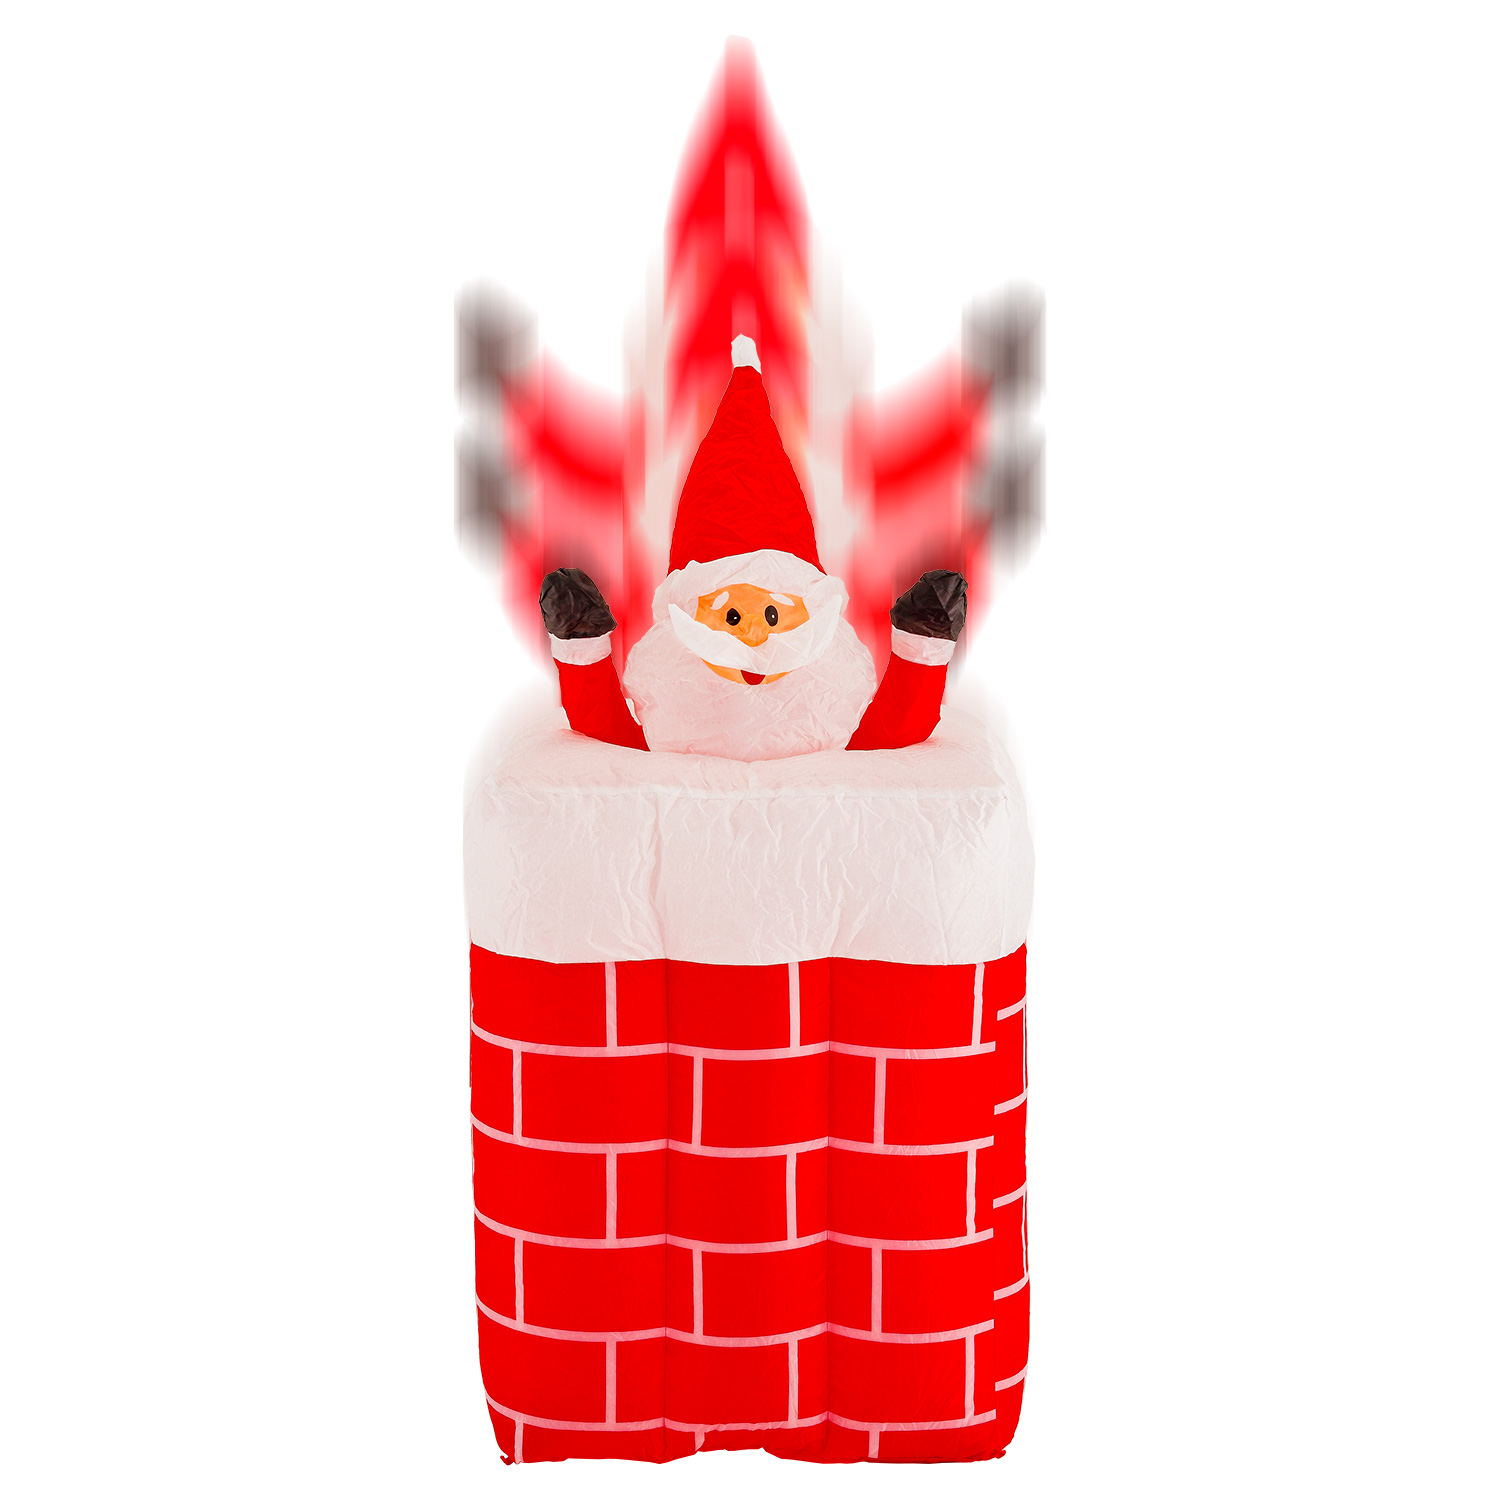 CHRISTMAS SANTA ANIMATED POPPING OUT OF CHIMNEY AIRBLOWN INFLATABLE 5 FT